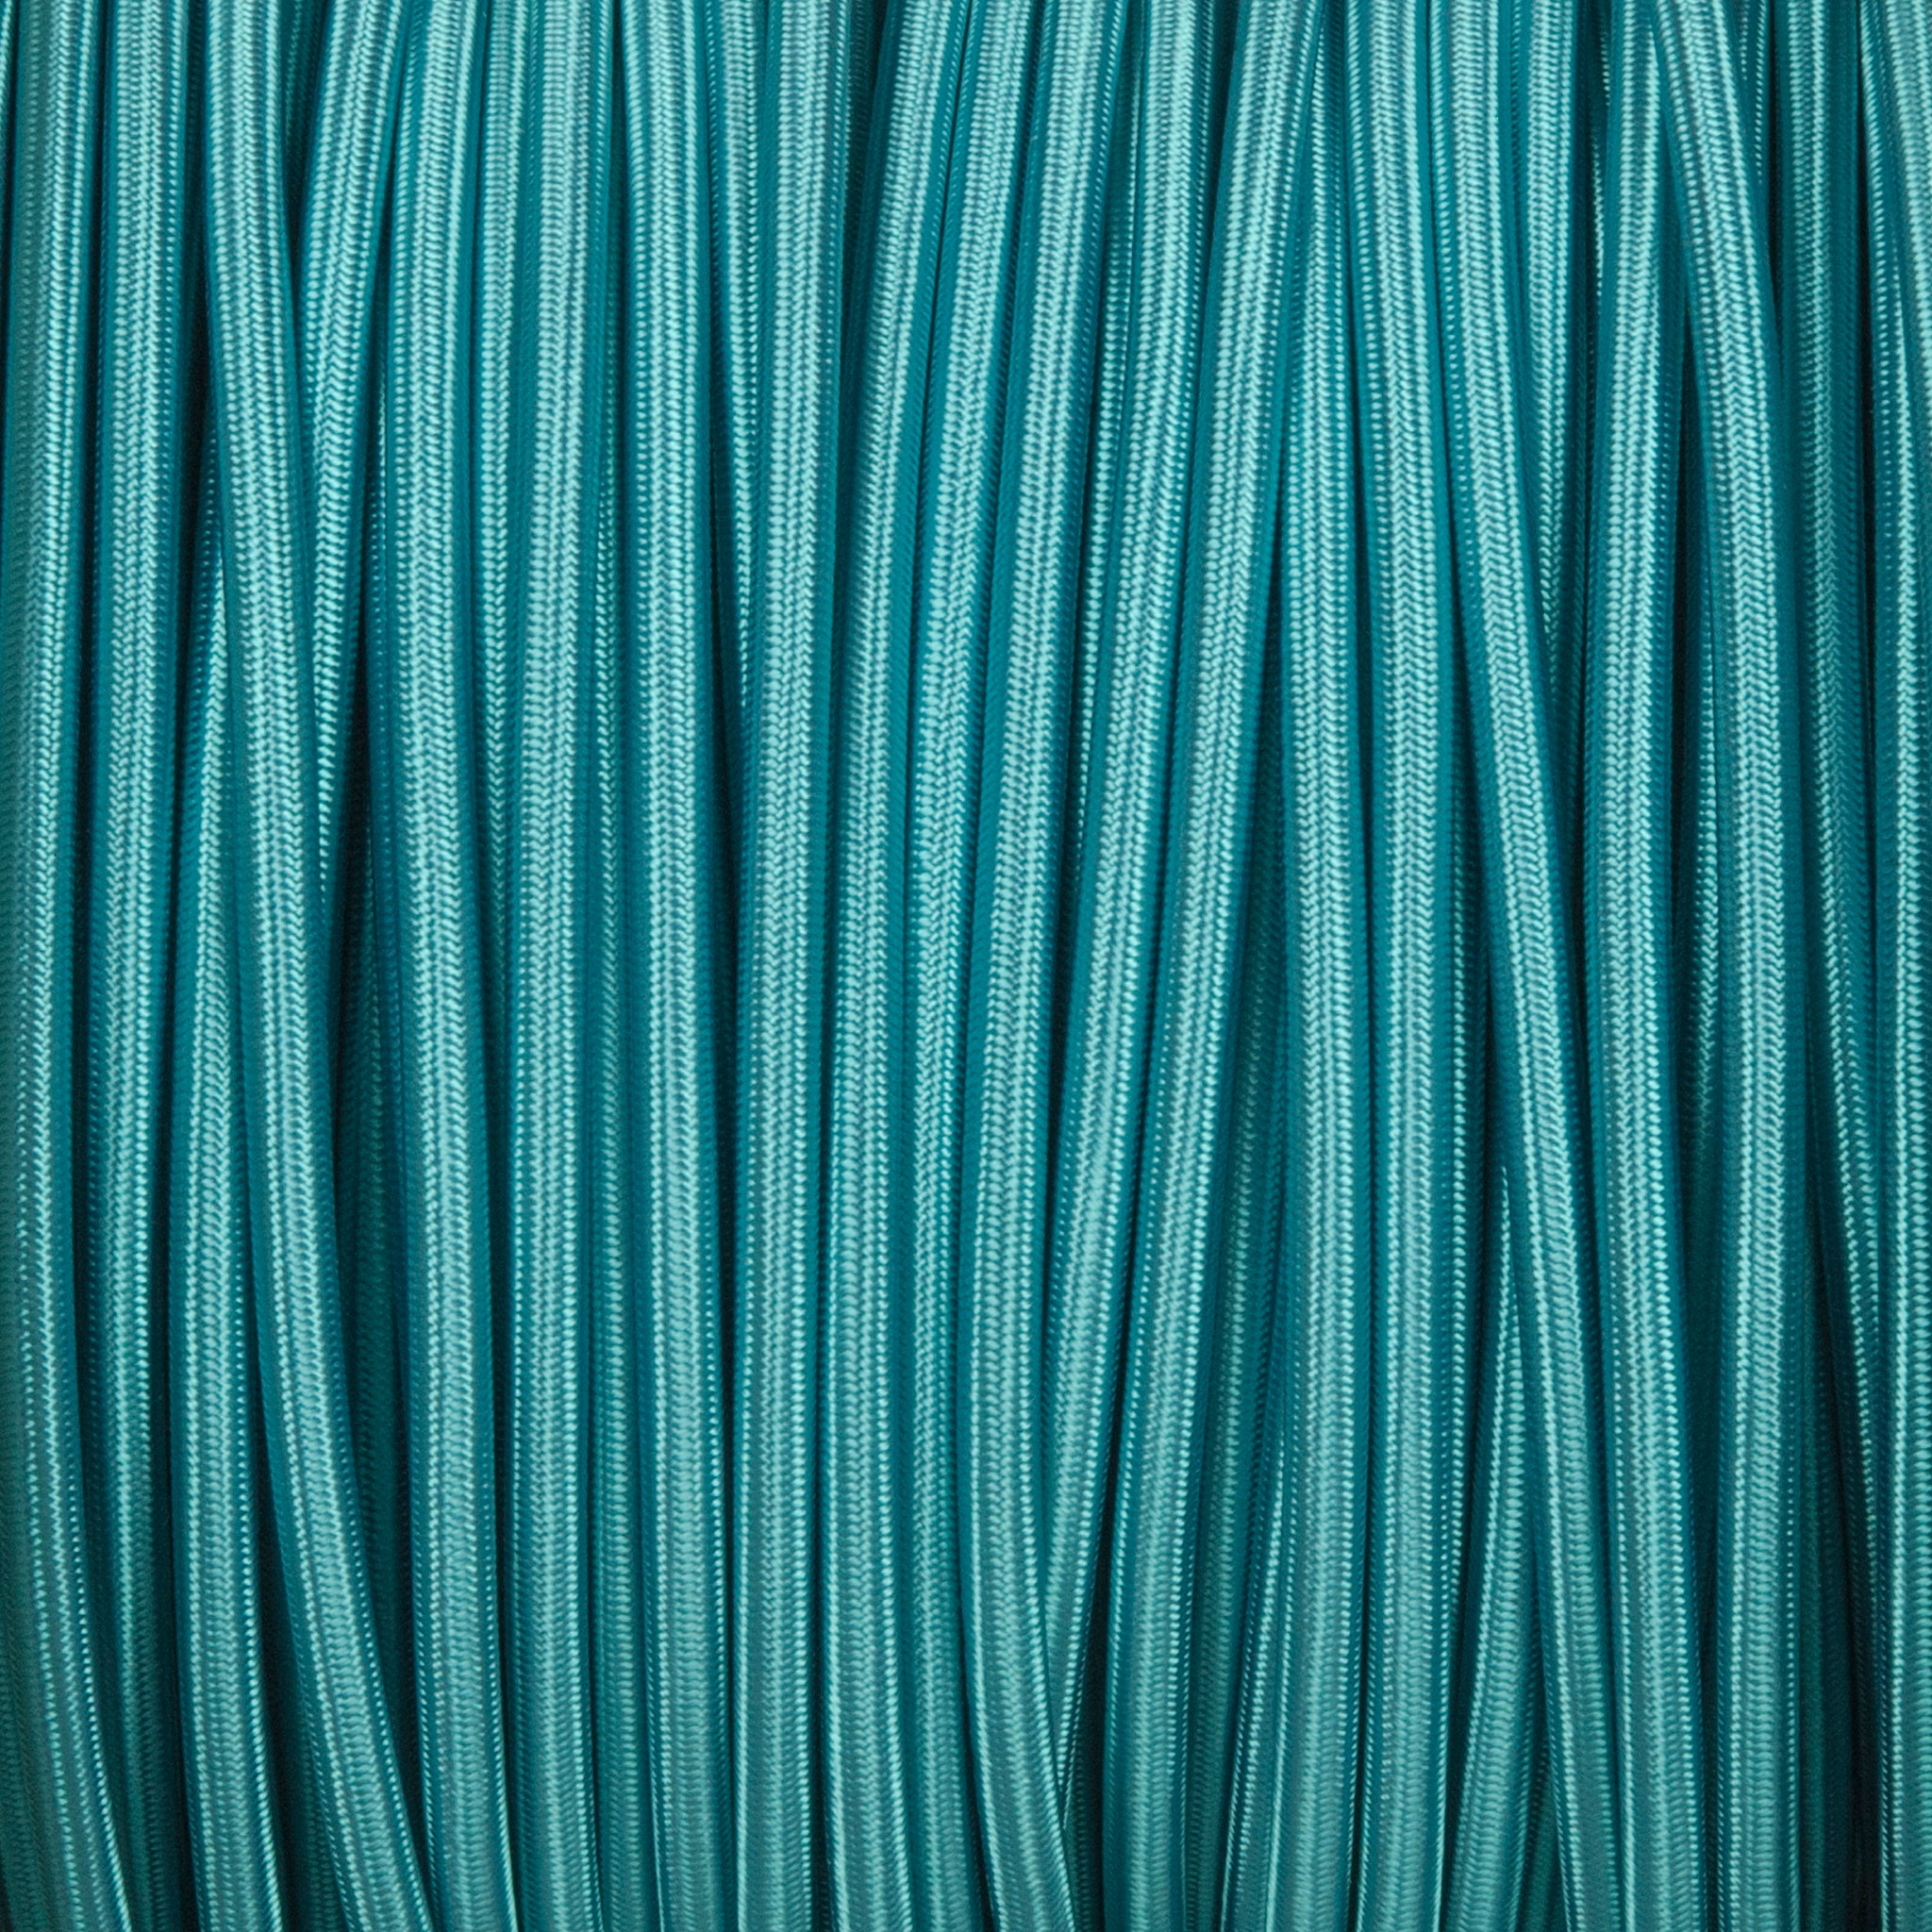 Round lighting cable - Turquoise blue braided fabric